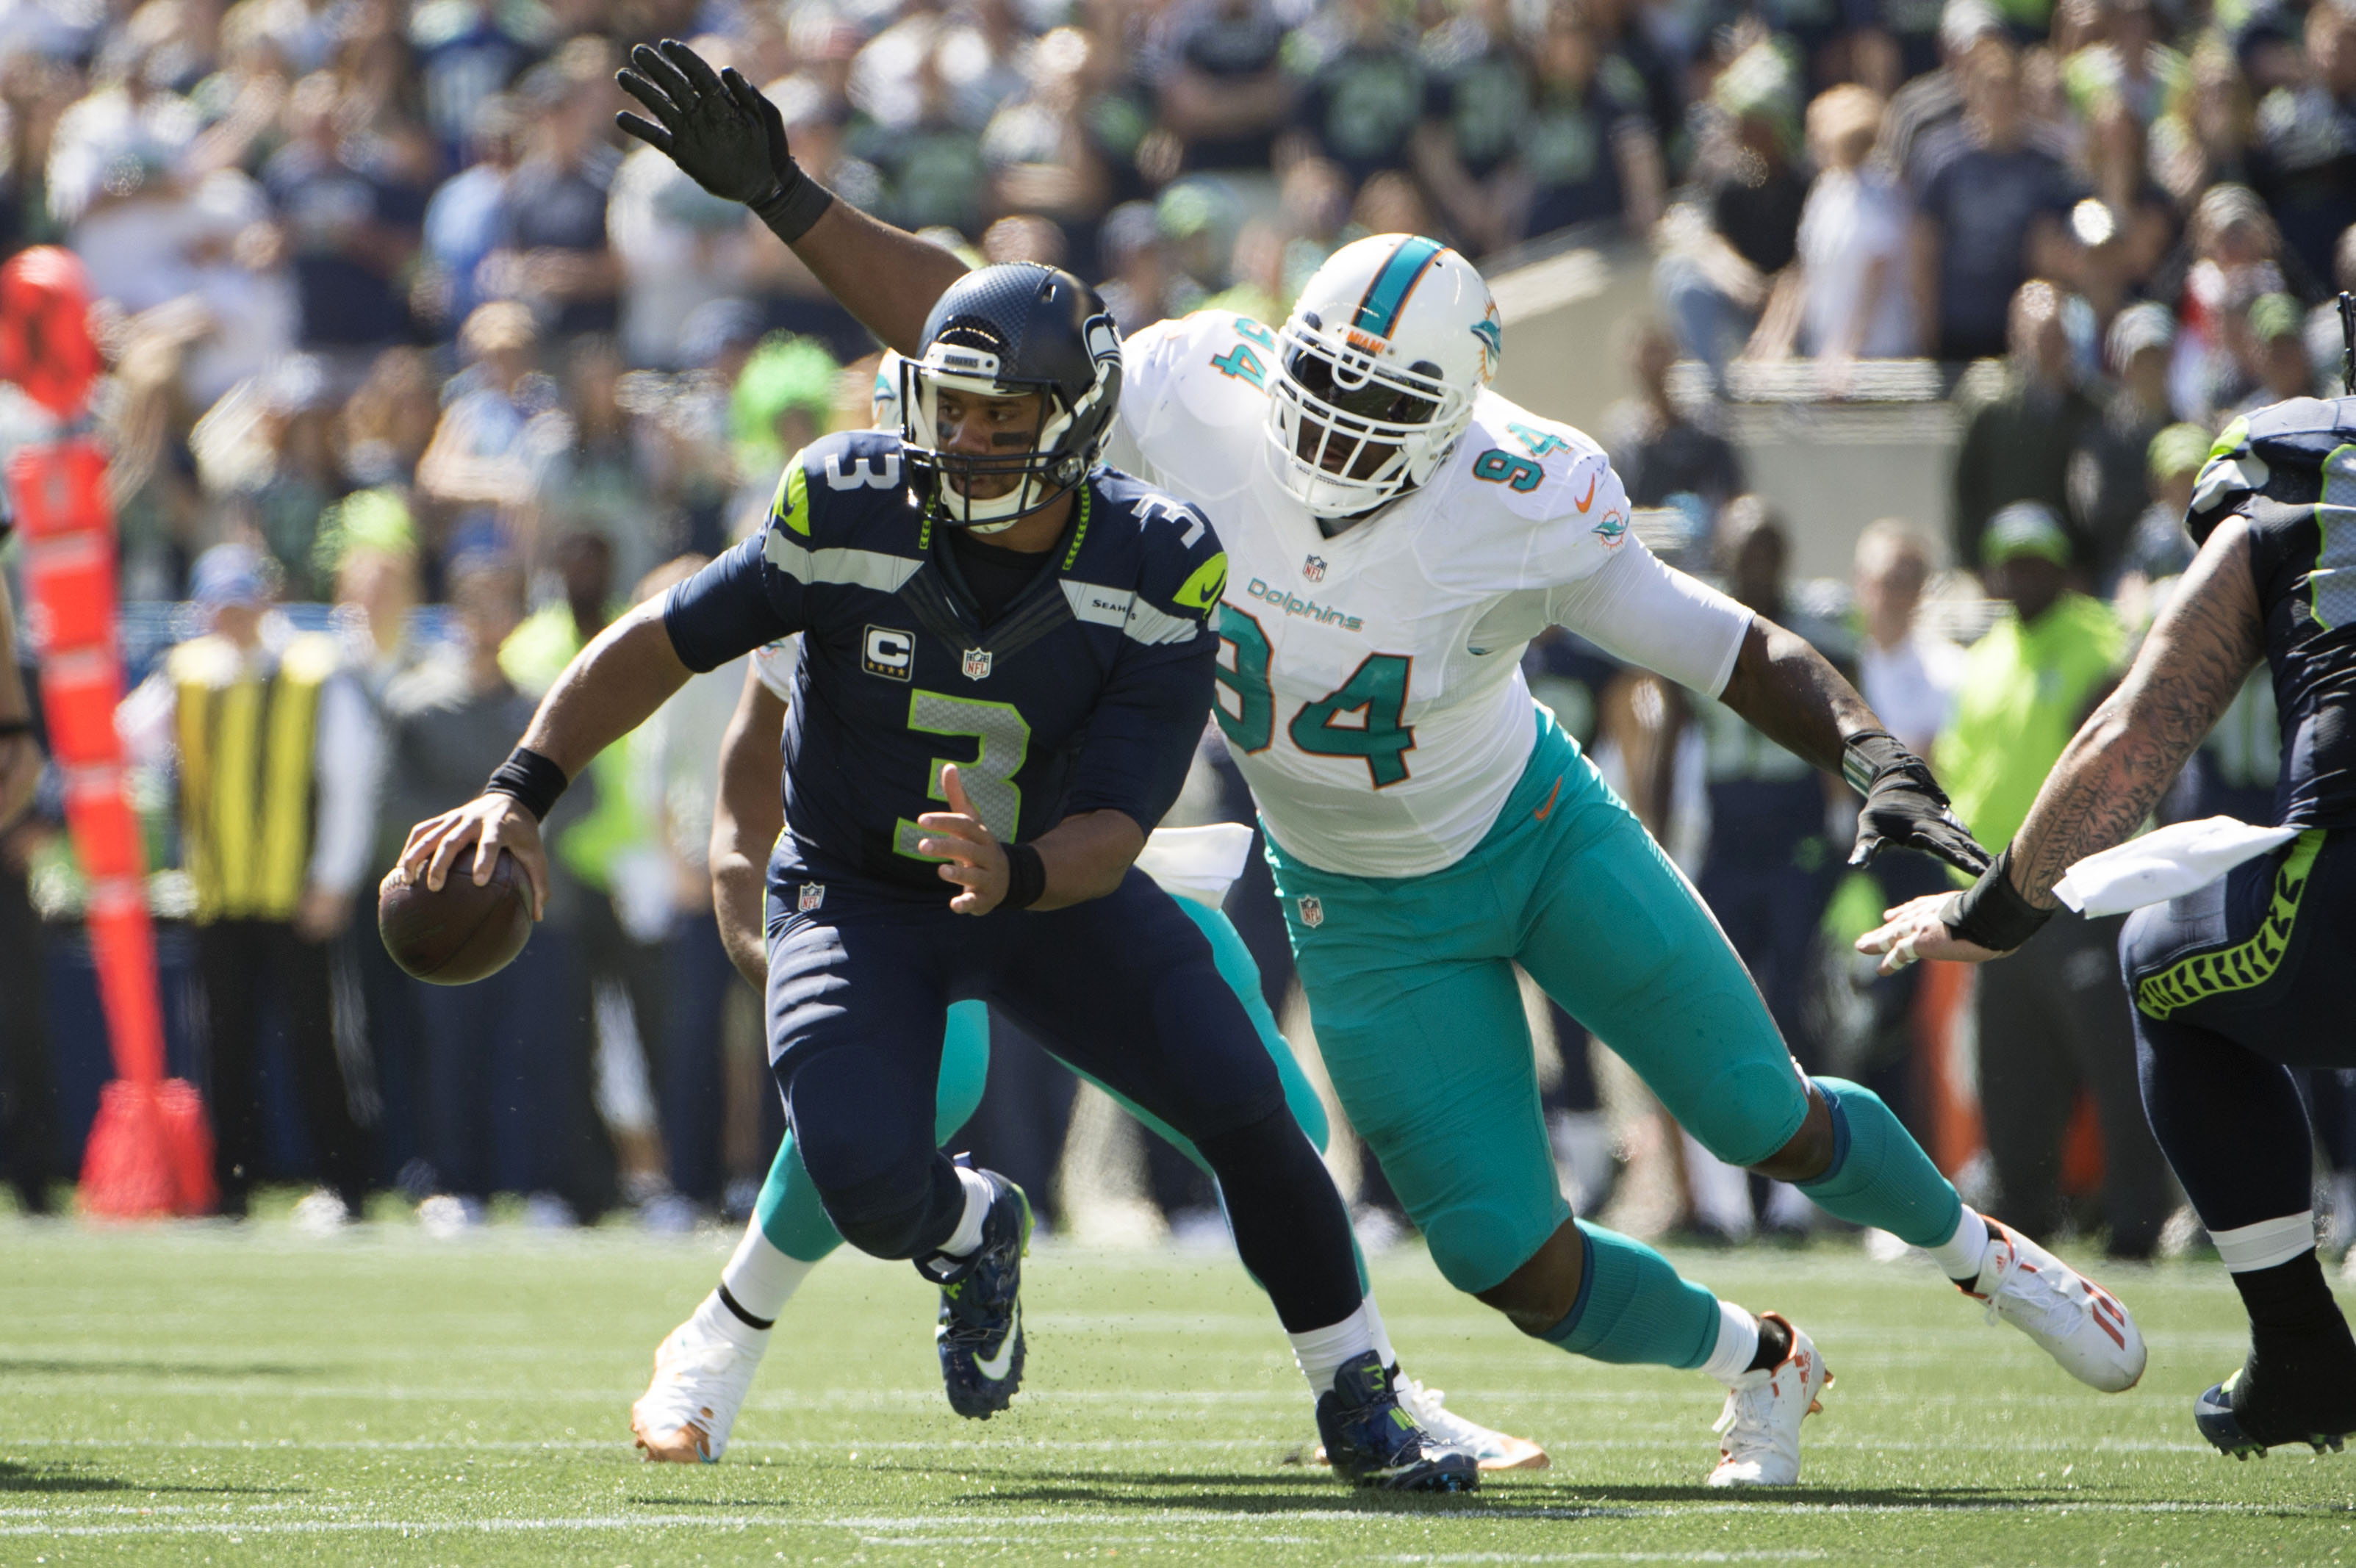 9536416-nfl-miami-dolphins-at-seattle-seahawks